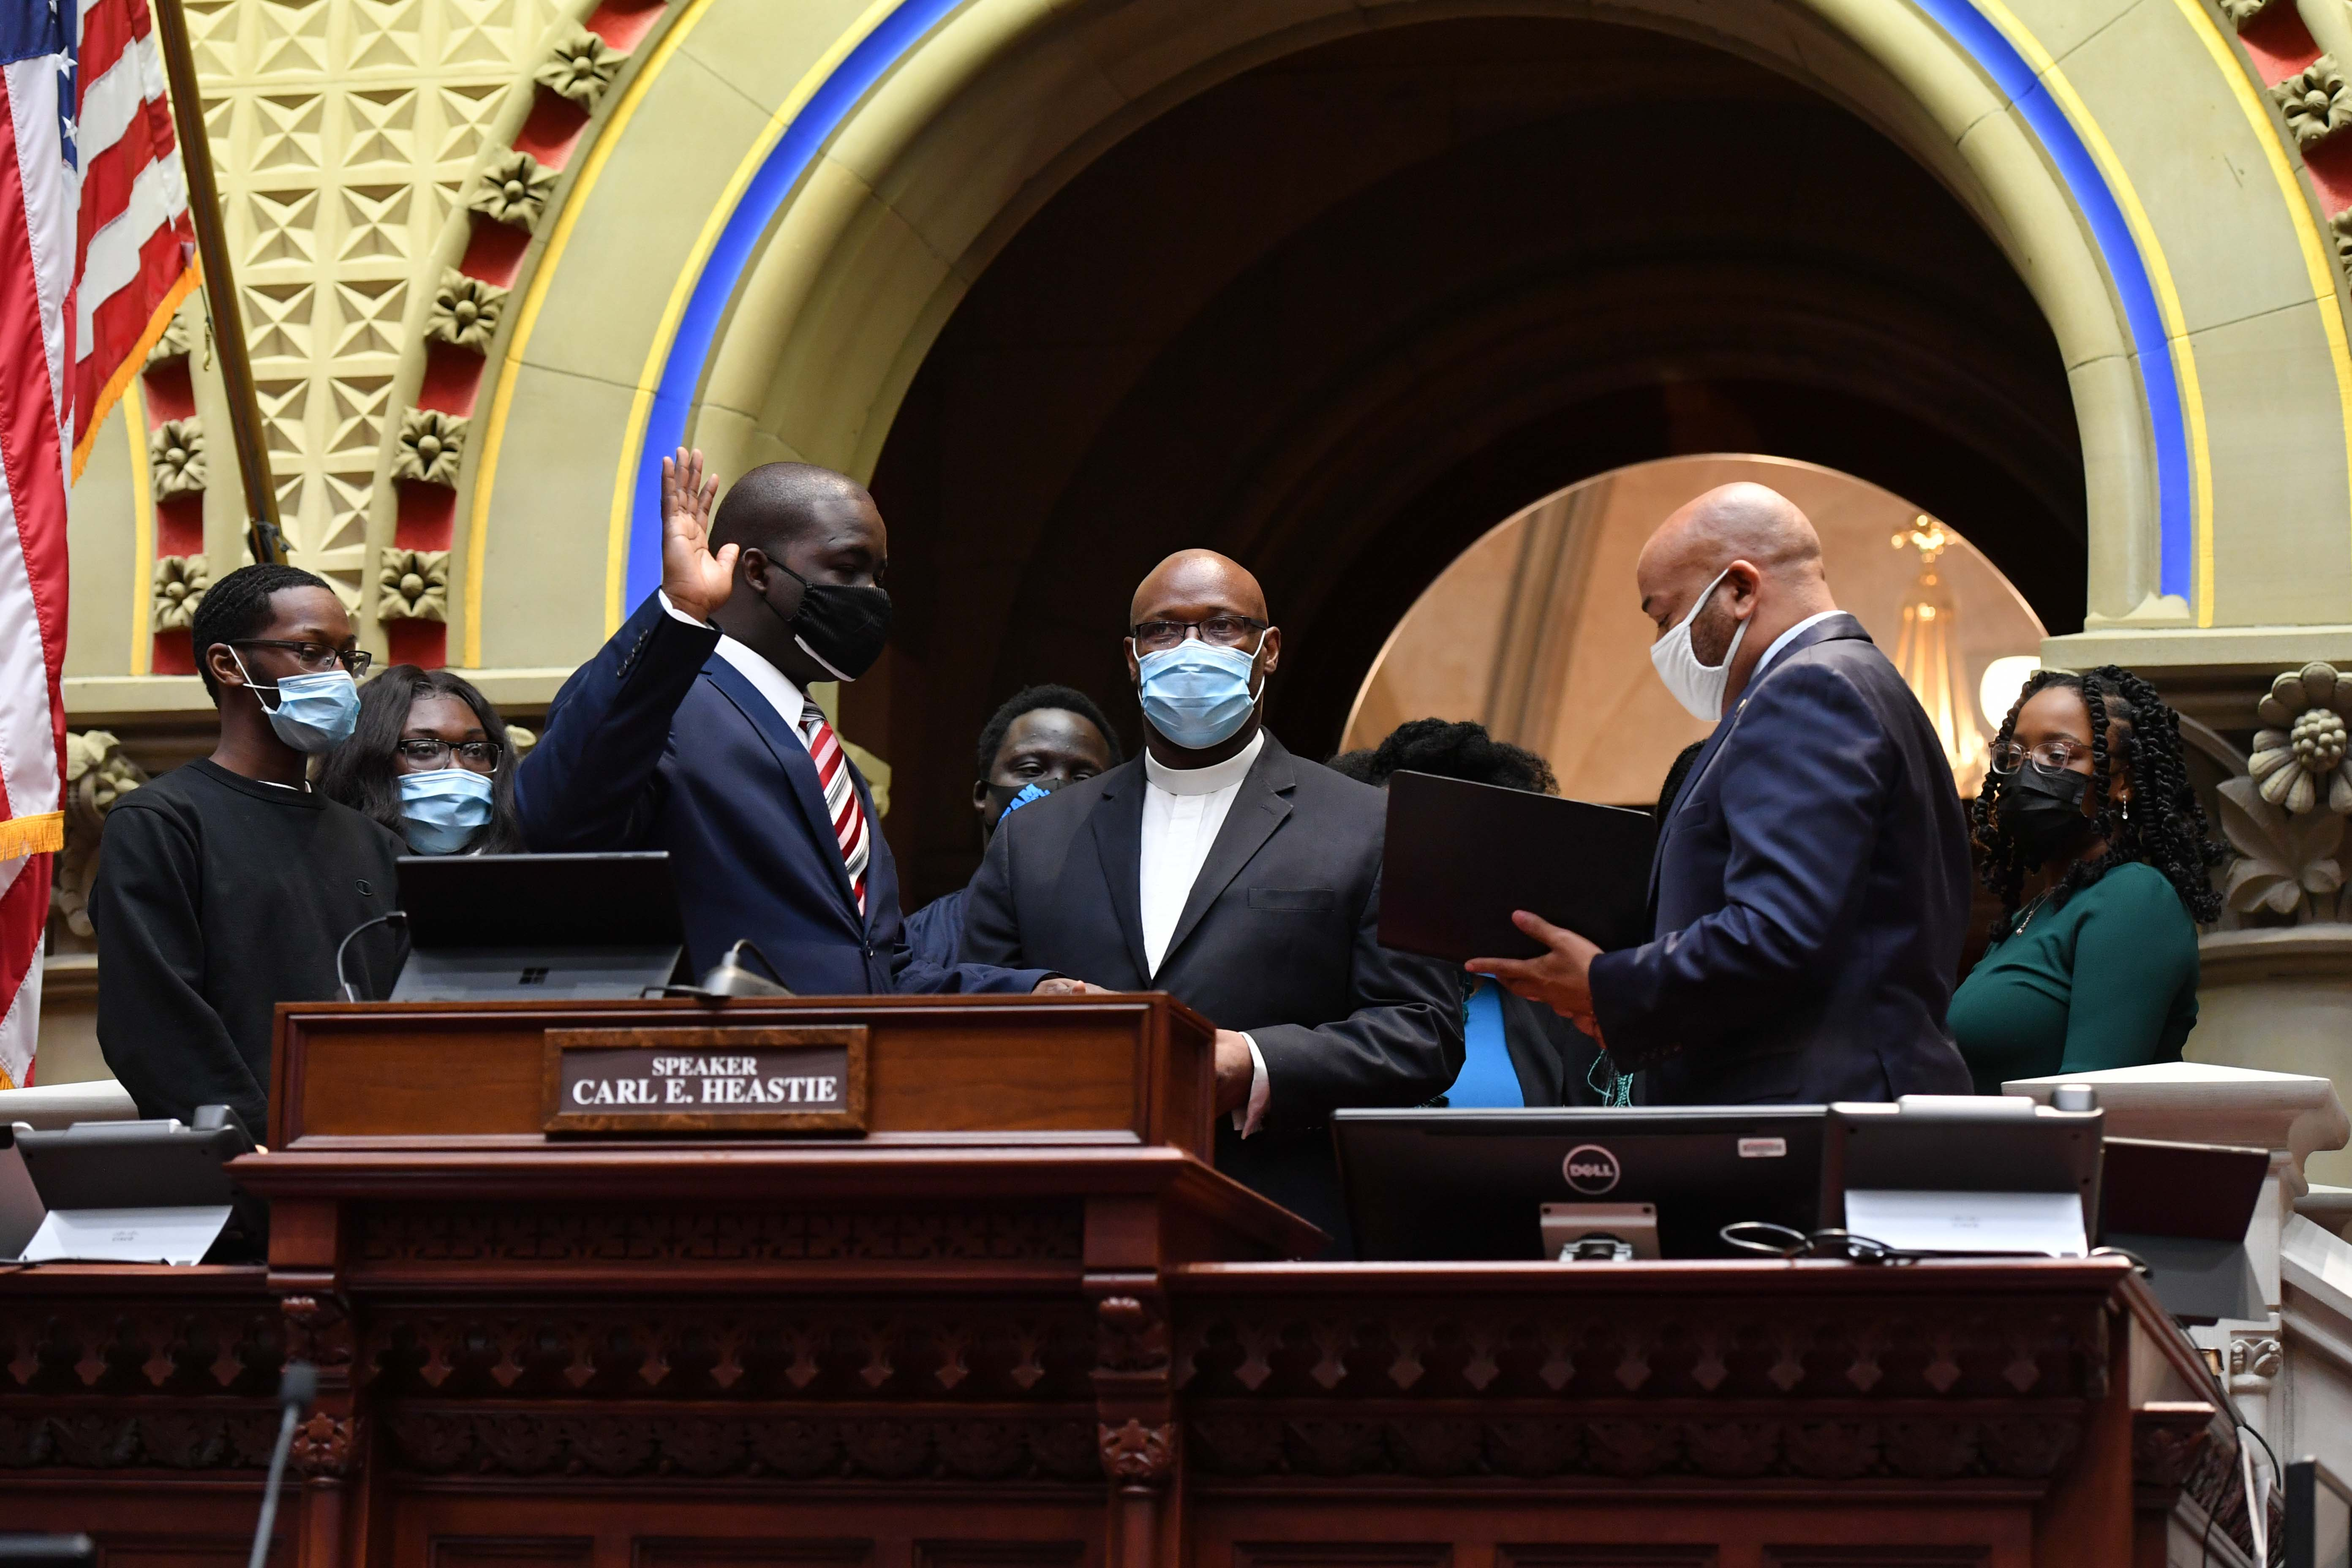 Speaker Carl Heastie swears in new Assemblymember Khaleel M. Anderson to represent the 31st AD